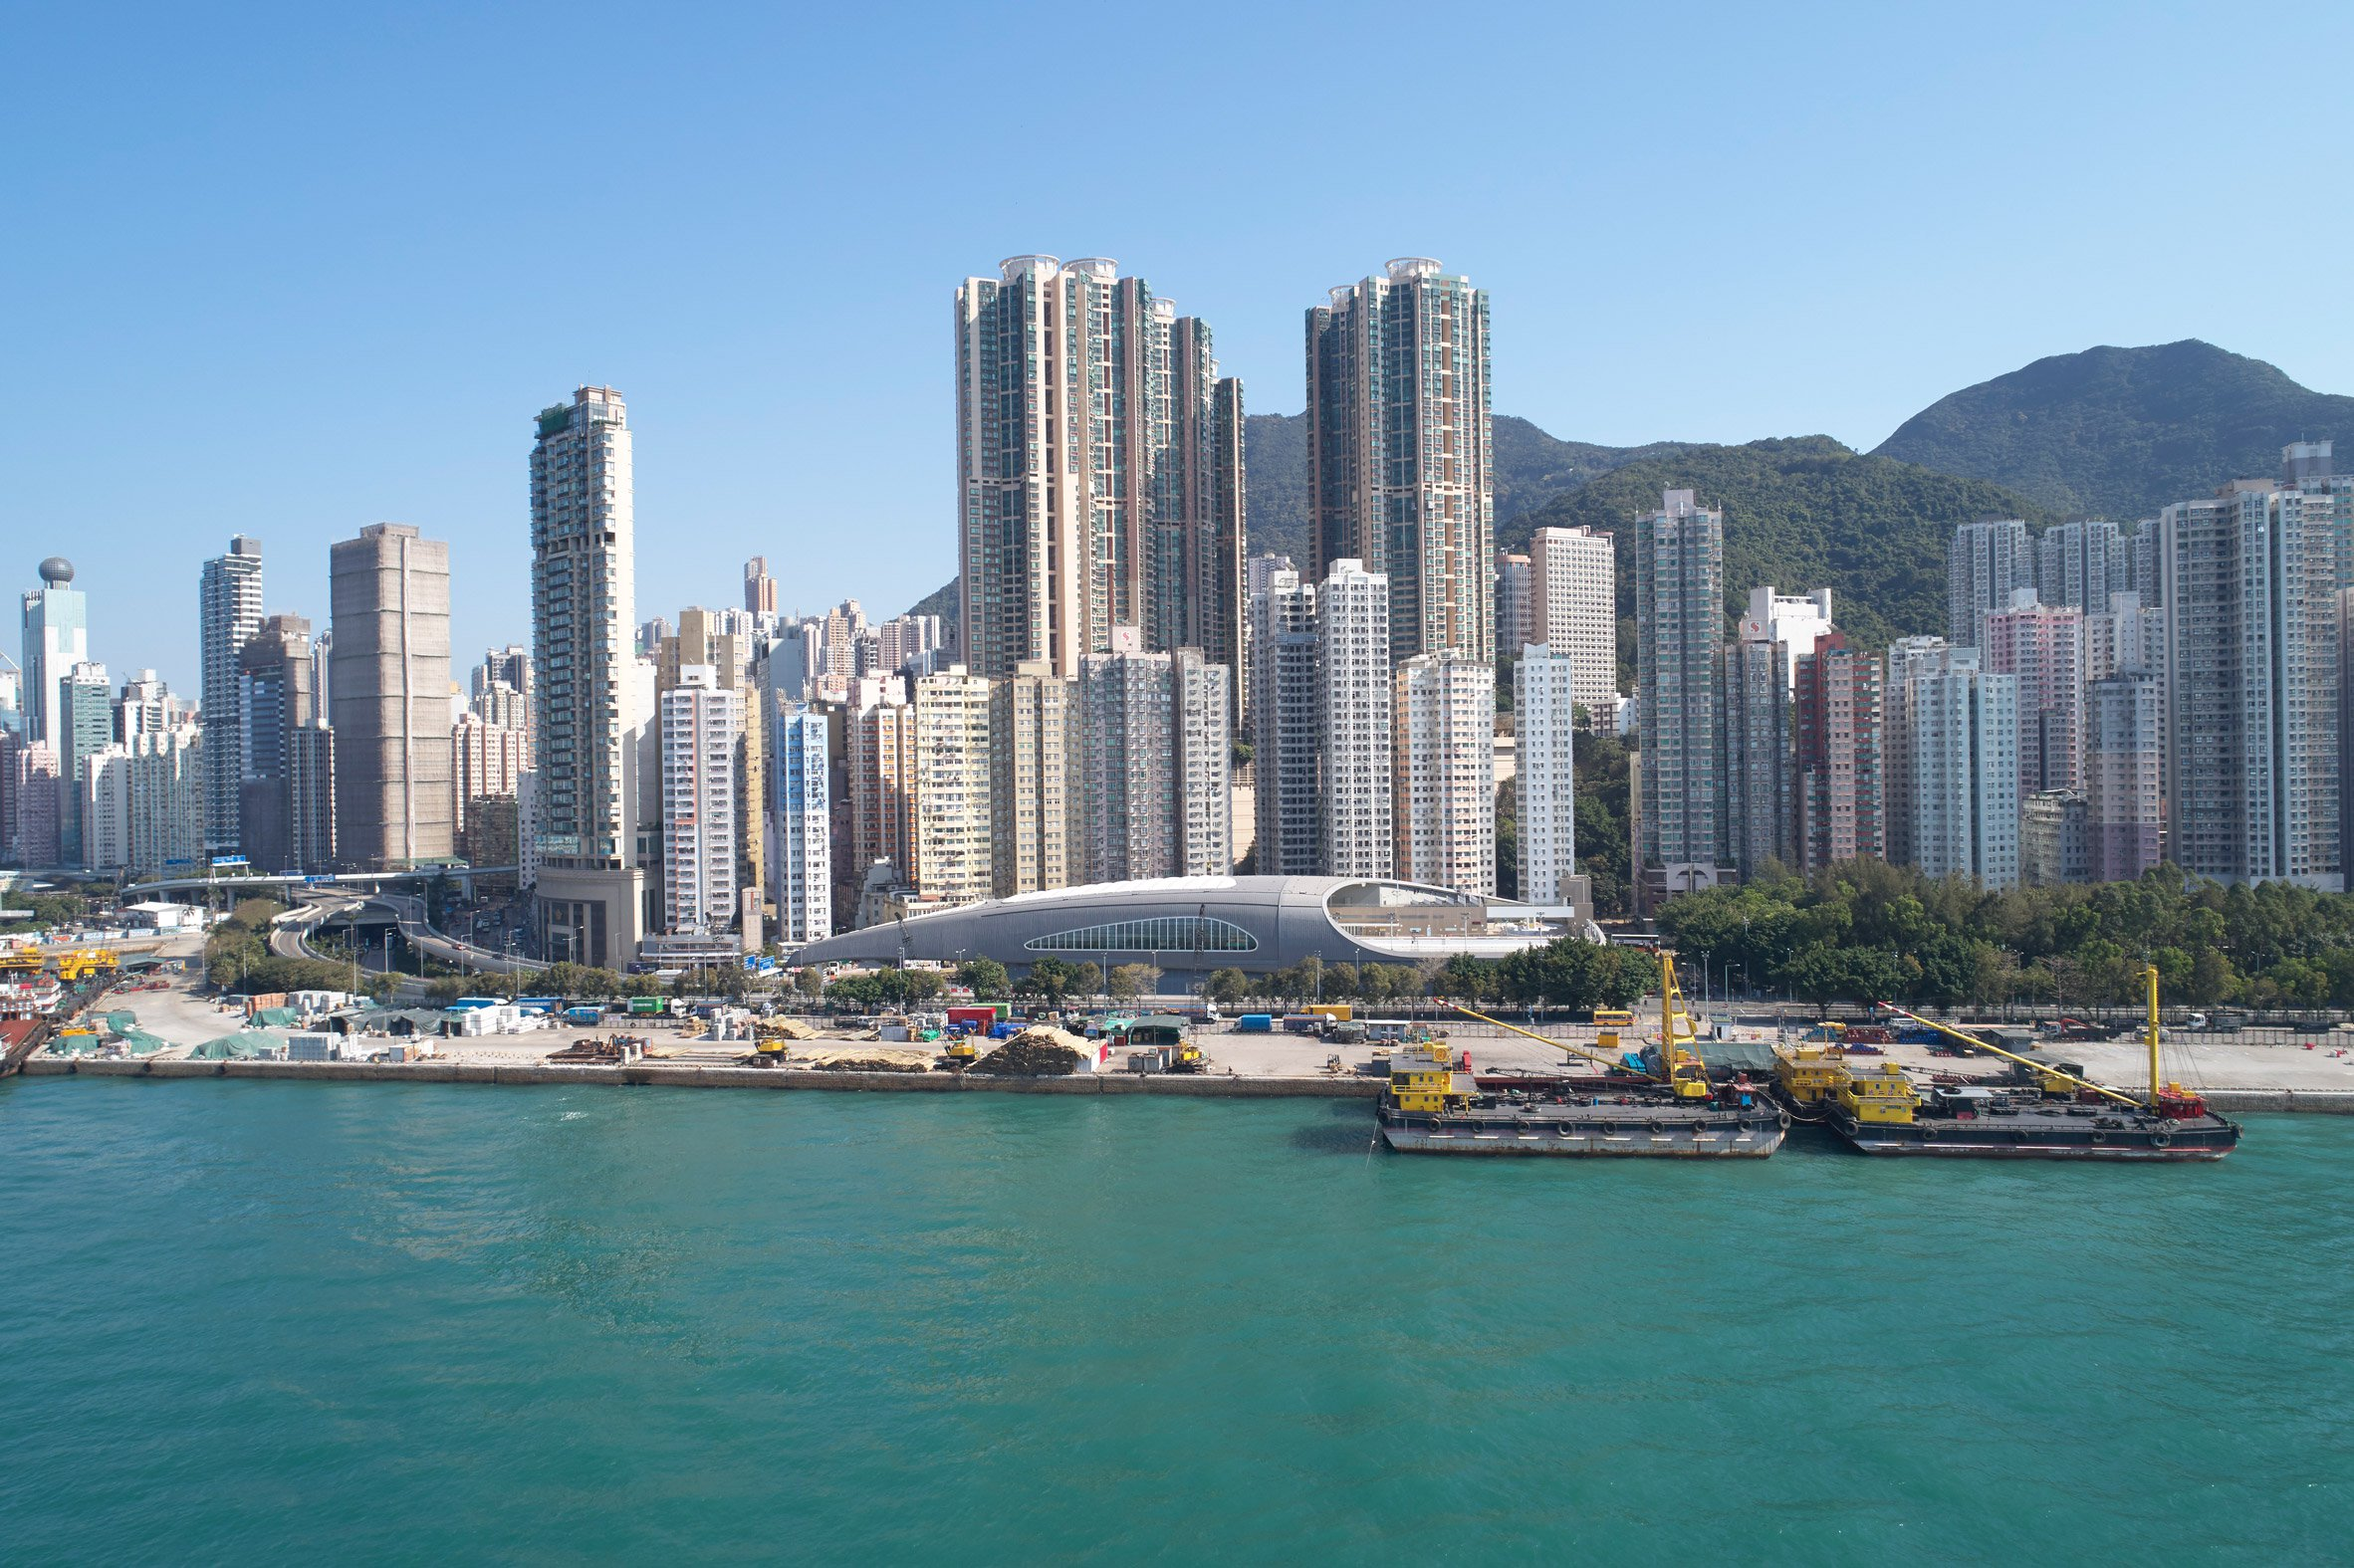 """Farrells completes swimming pool with """"shell-like"""" roof on Hong Kong seafront"""